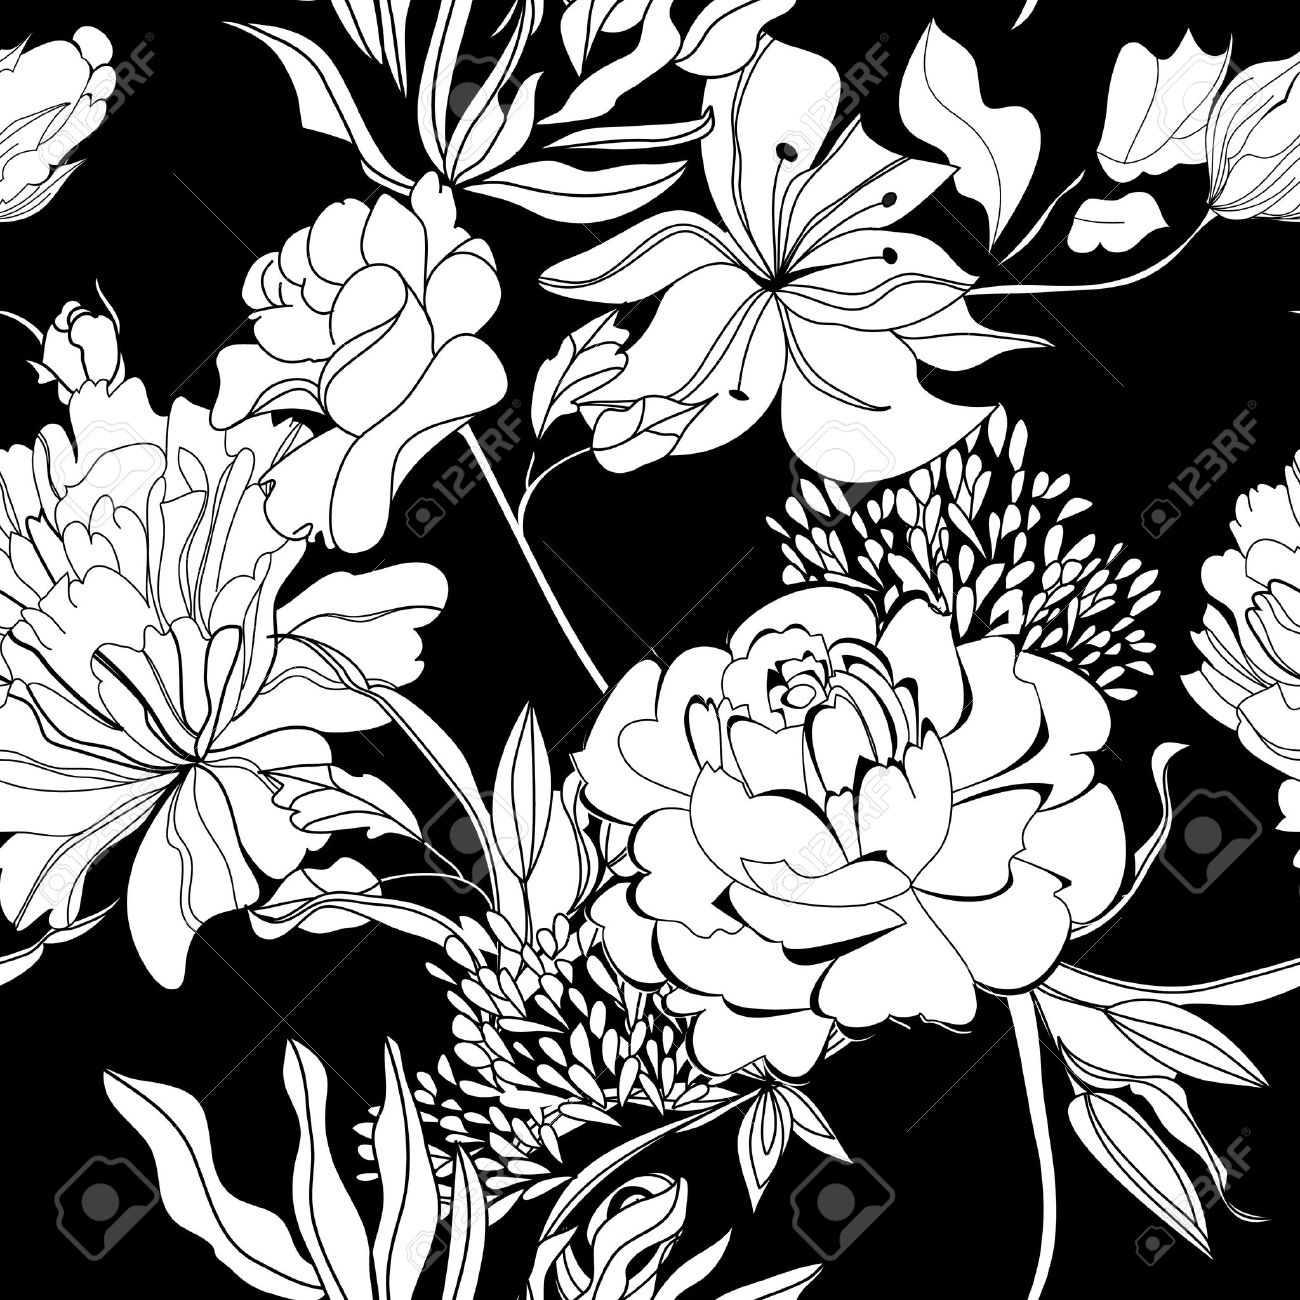 Black and white flowers drawing at getdrawings free for 1300x1300 gallery black wallpaper with white flowers mightylinksfo